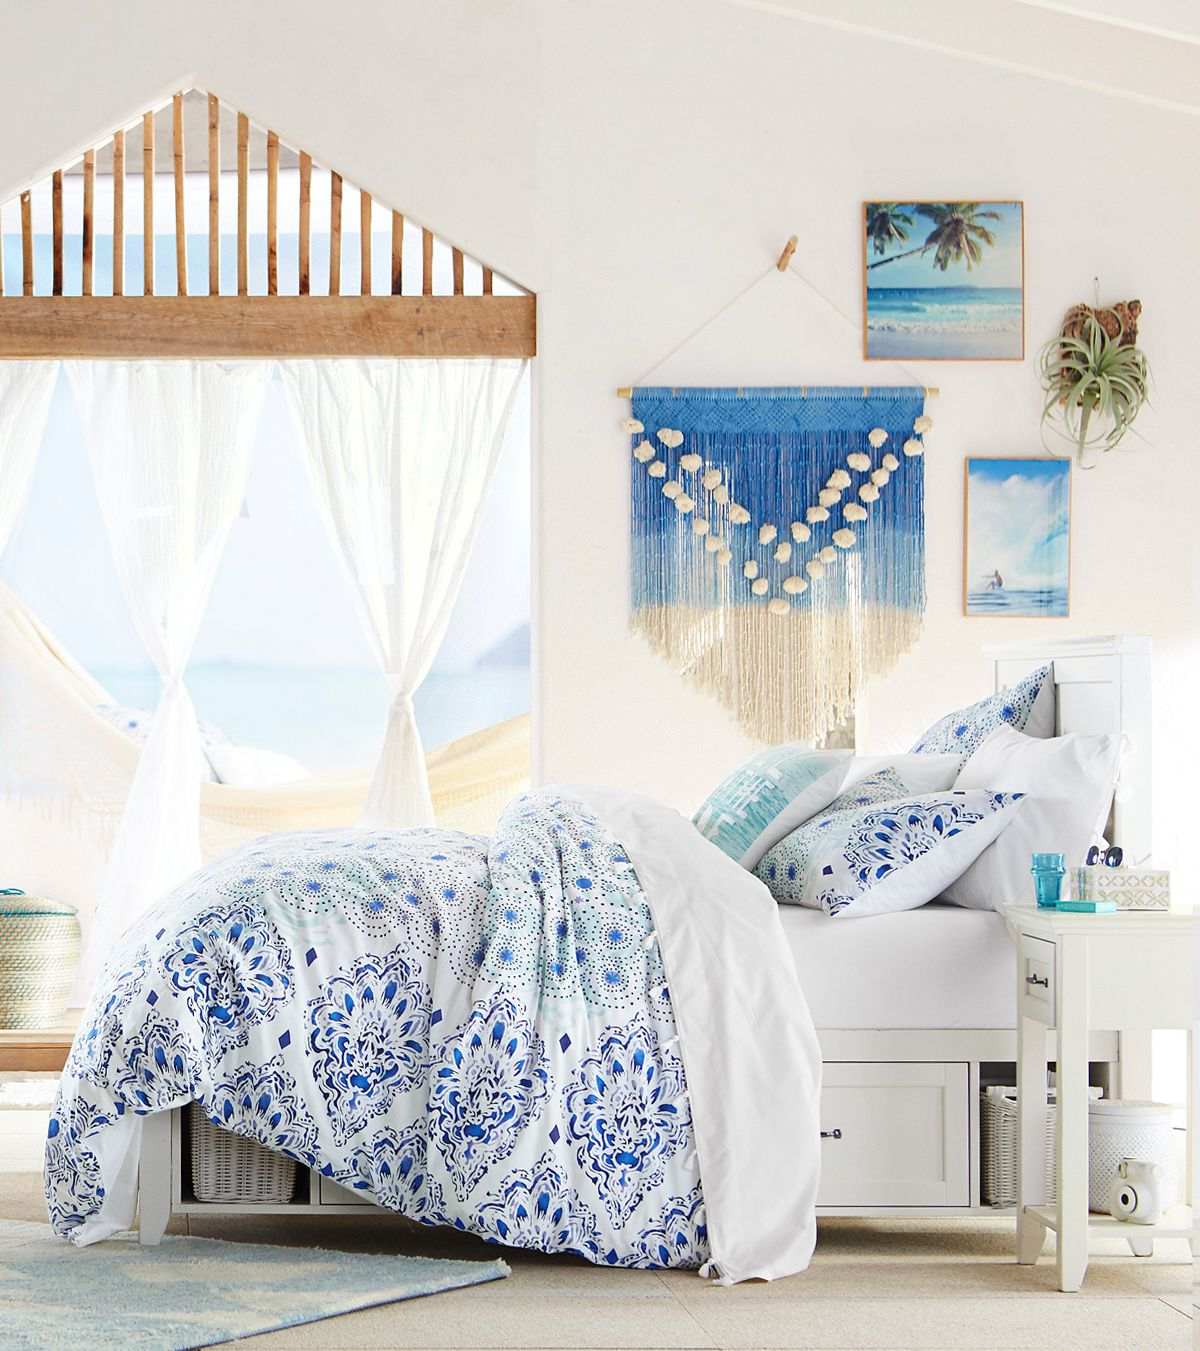 3 Easy Ways To Get The Surfer Look In Your Room 1 Pick A